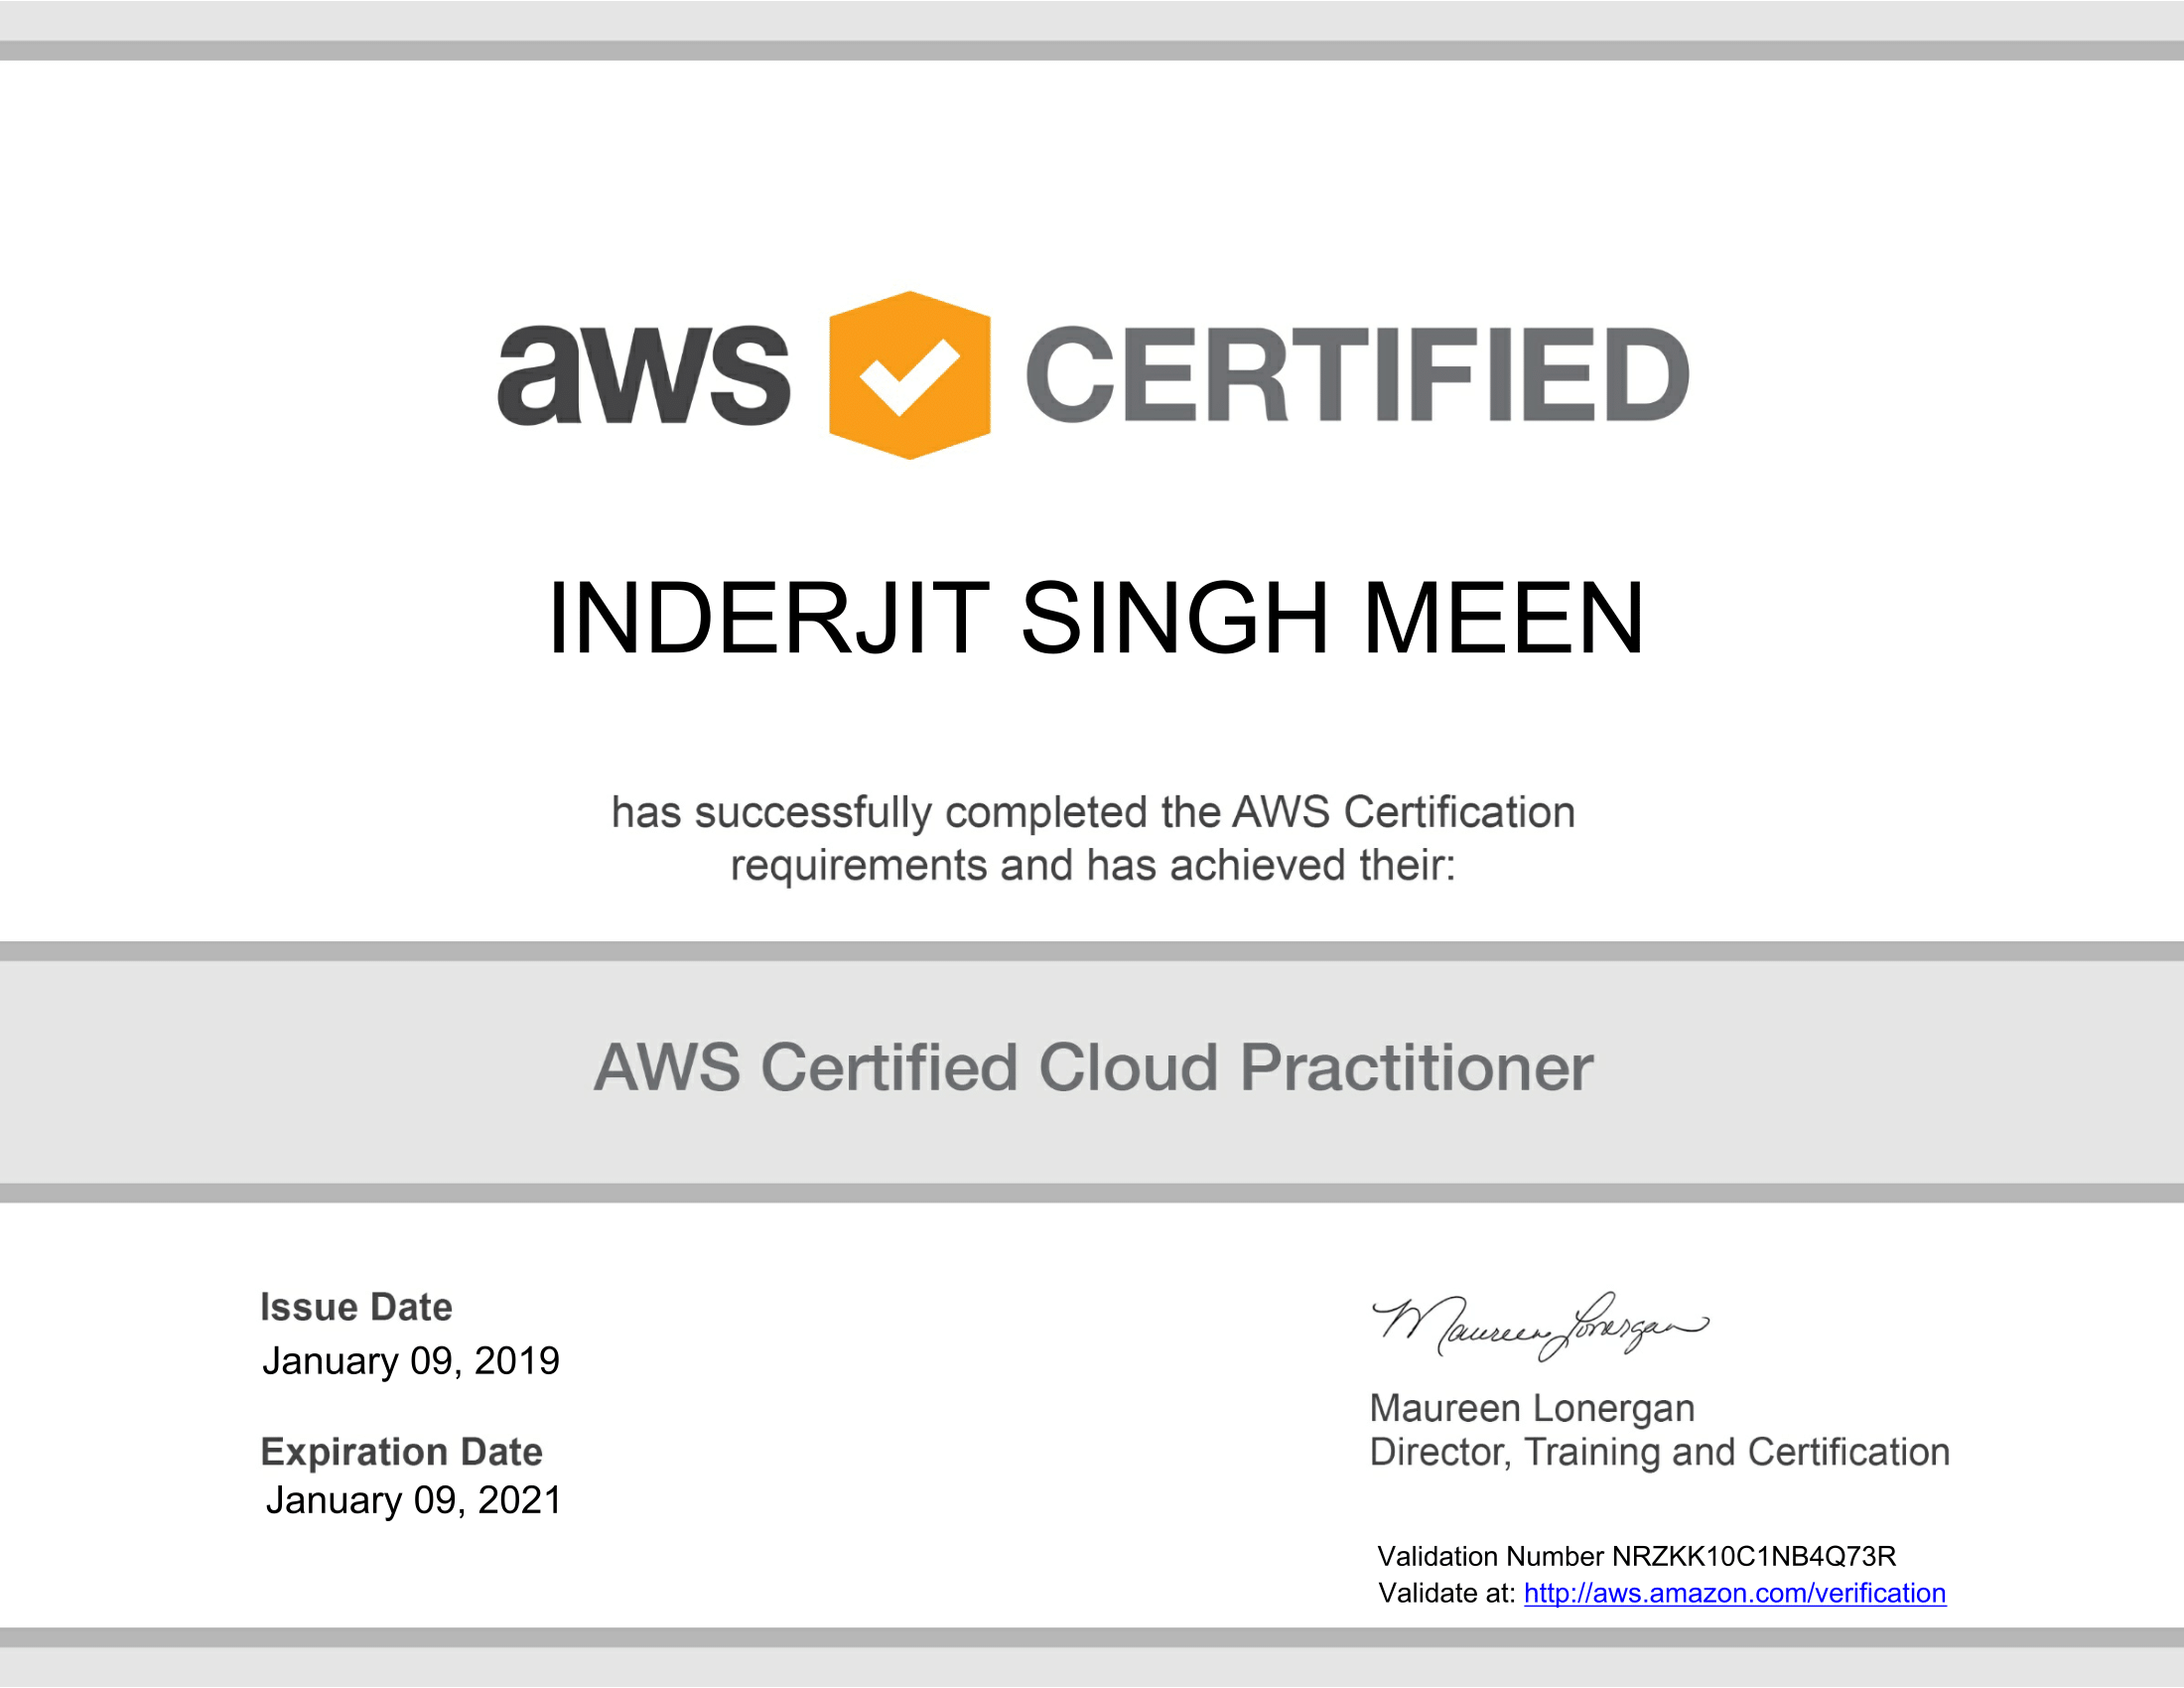 aws-certified